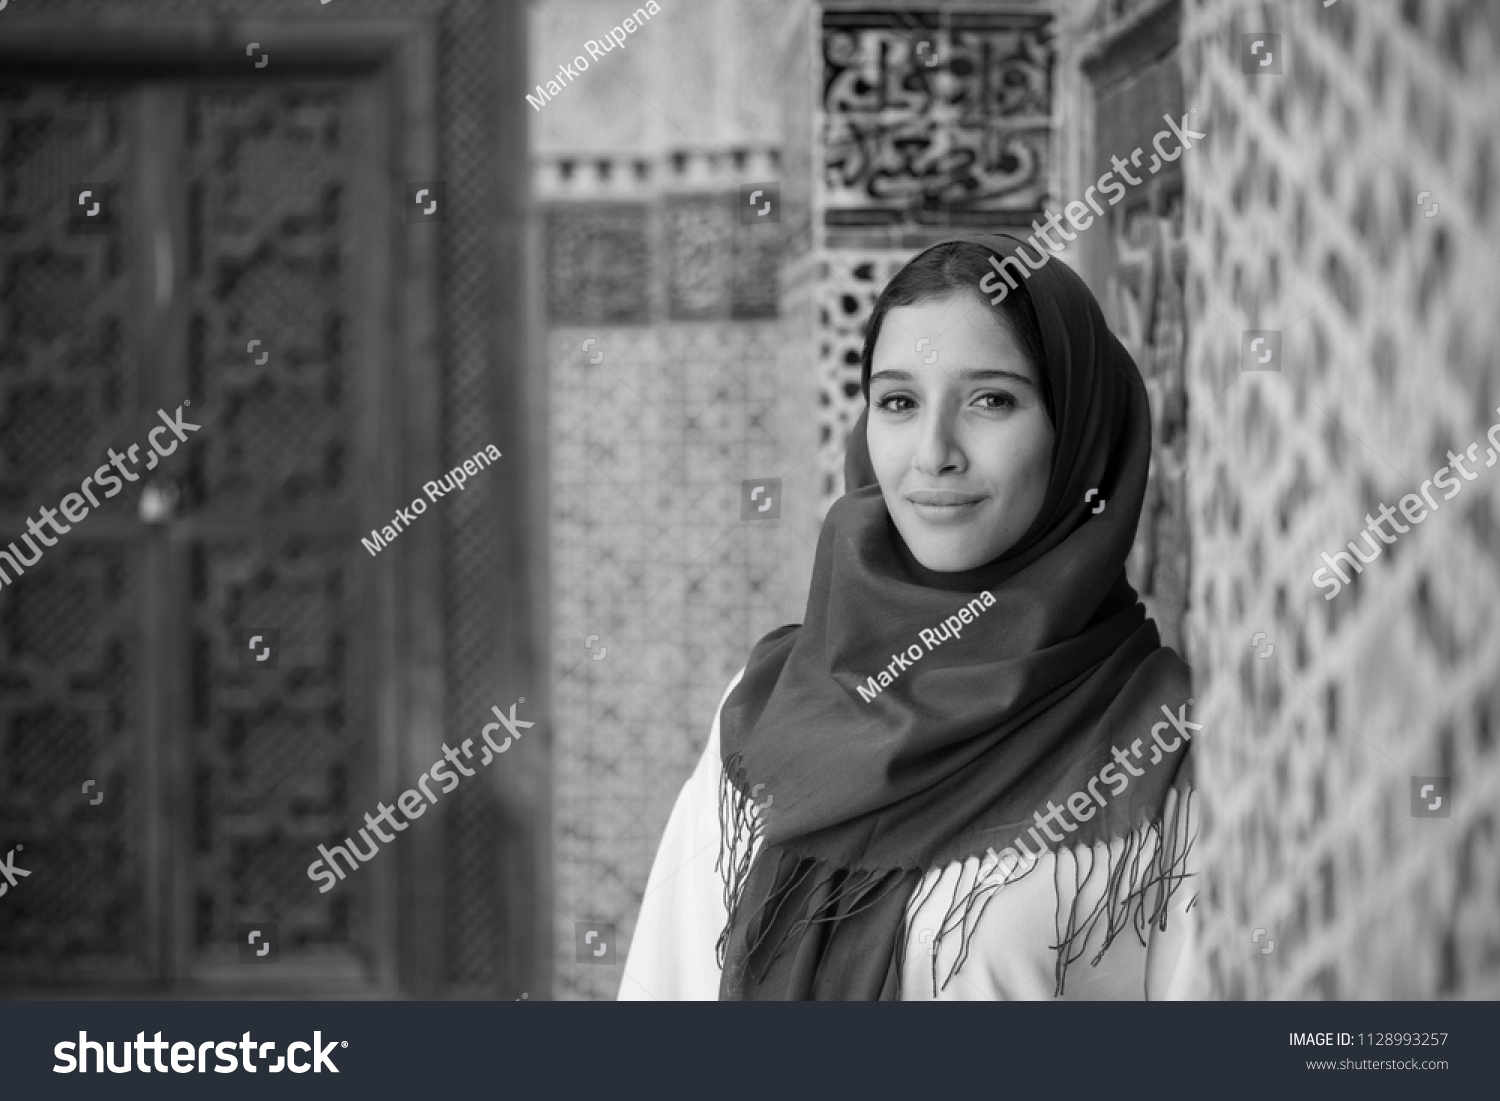 Black and white portrait of arab woman in traditional clothing with hijab on her head